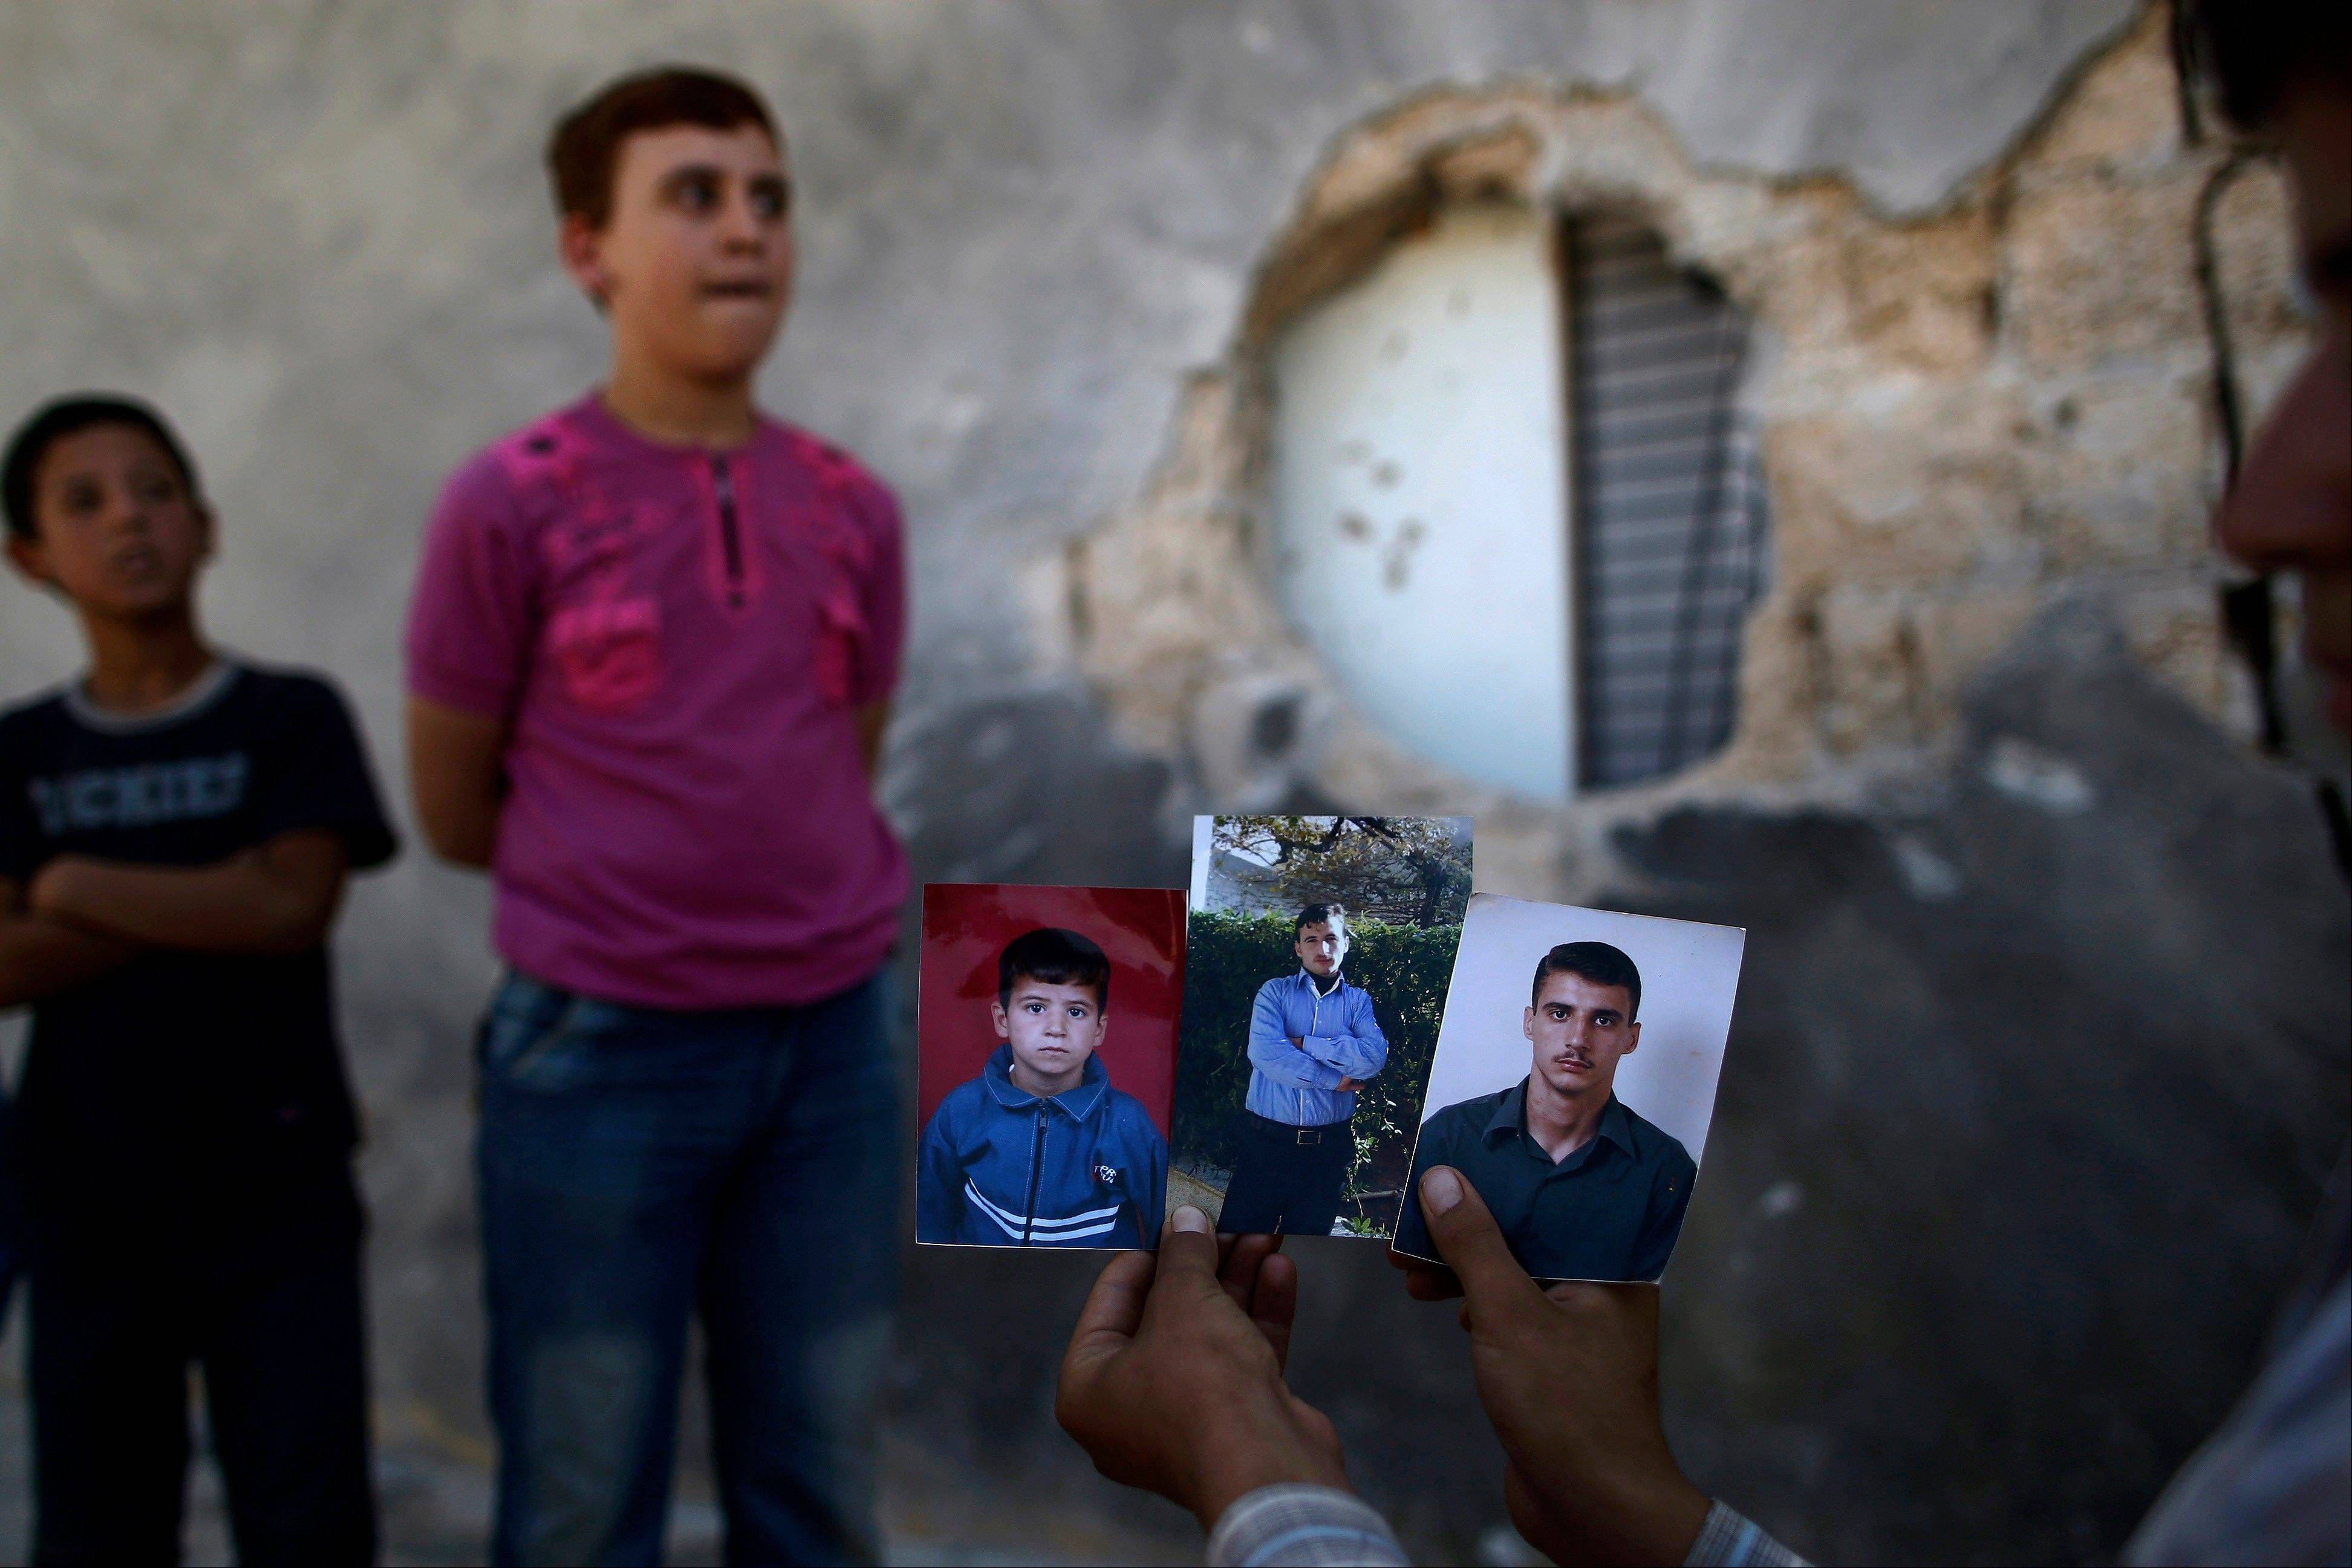 Syrian Hamzah Abu Bakri, displays portraits of his brothers who were killed Thursday by government shelling as they stood by their vegetable shop on the outskirts of Aleppo, Syria.